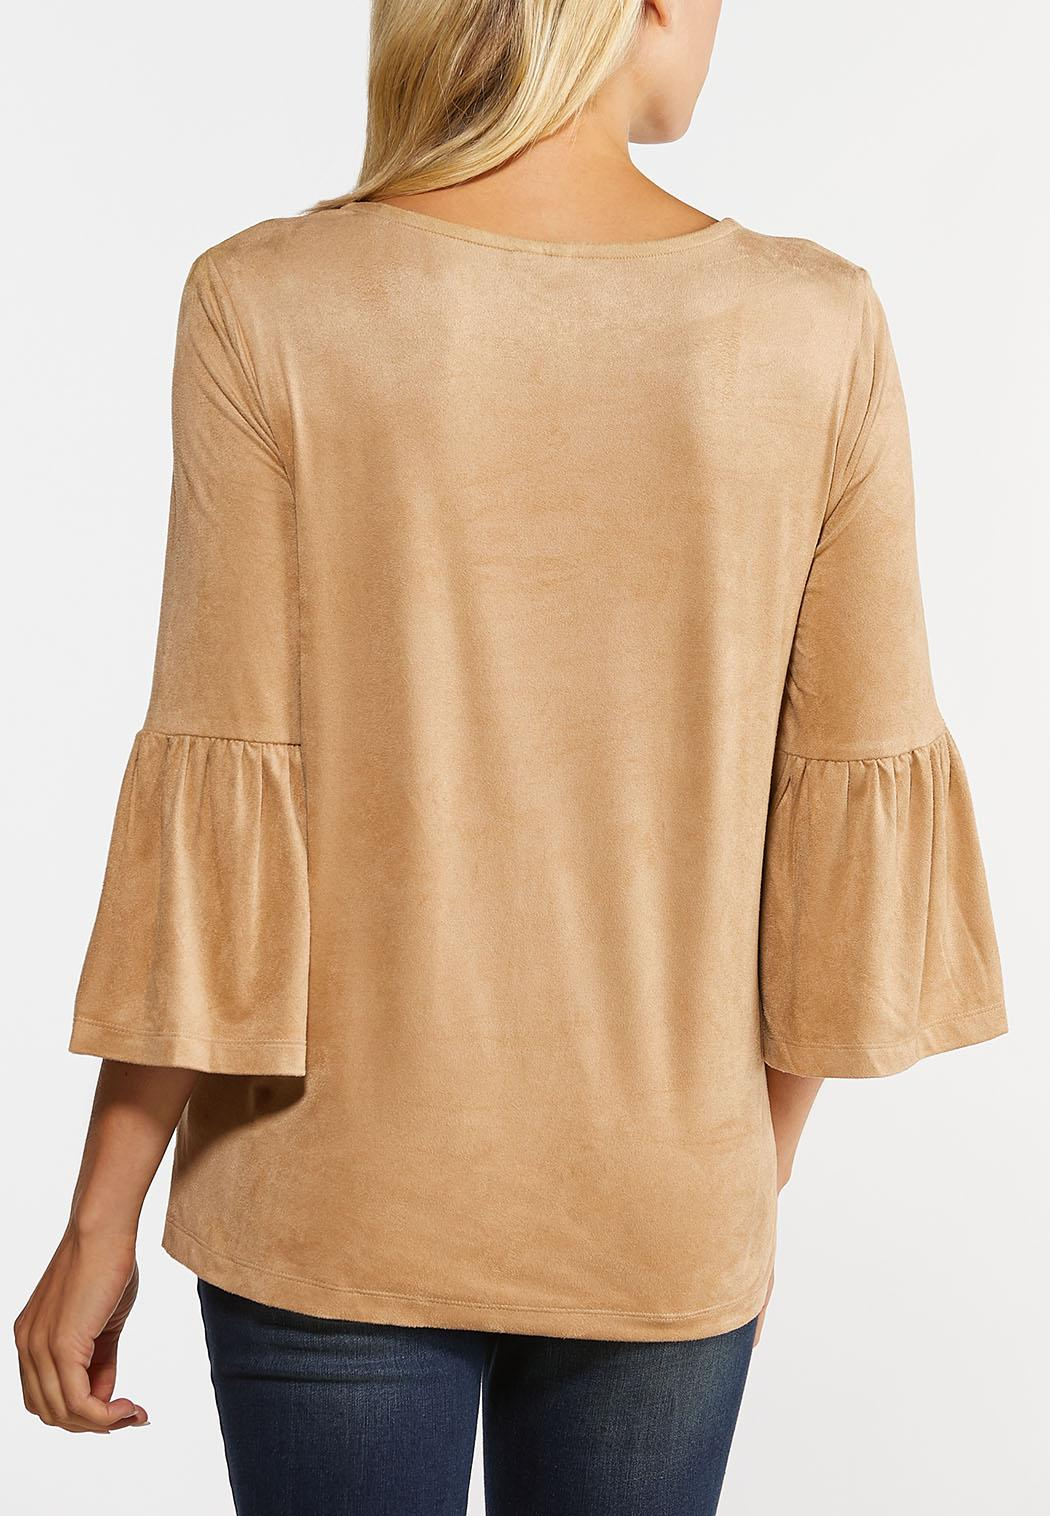 Faux Suede Flounced Sleeve Top (Item #44391886)